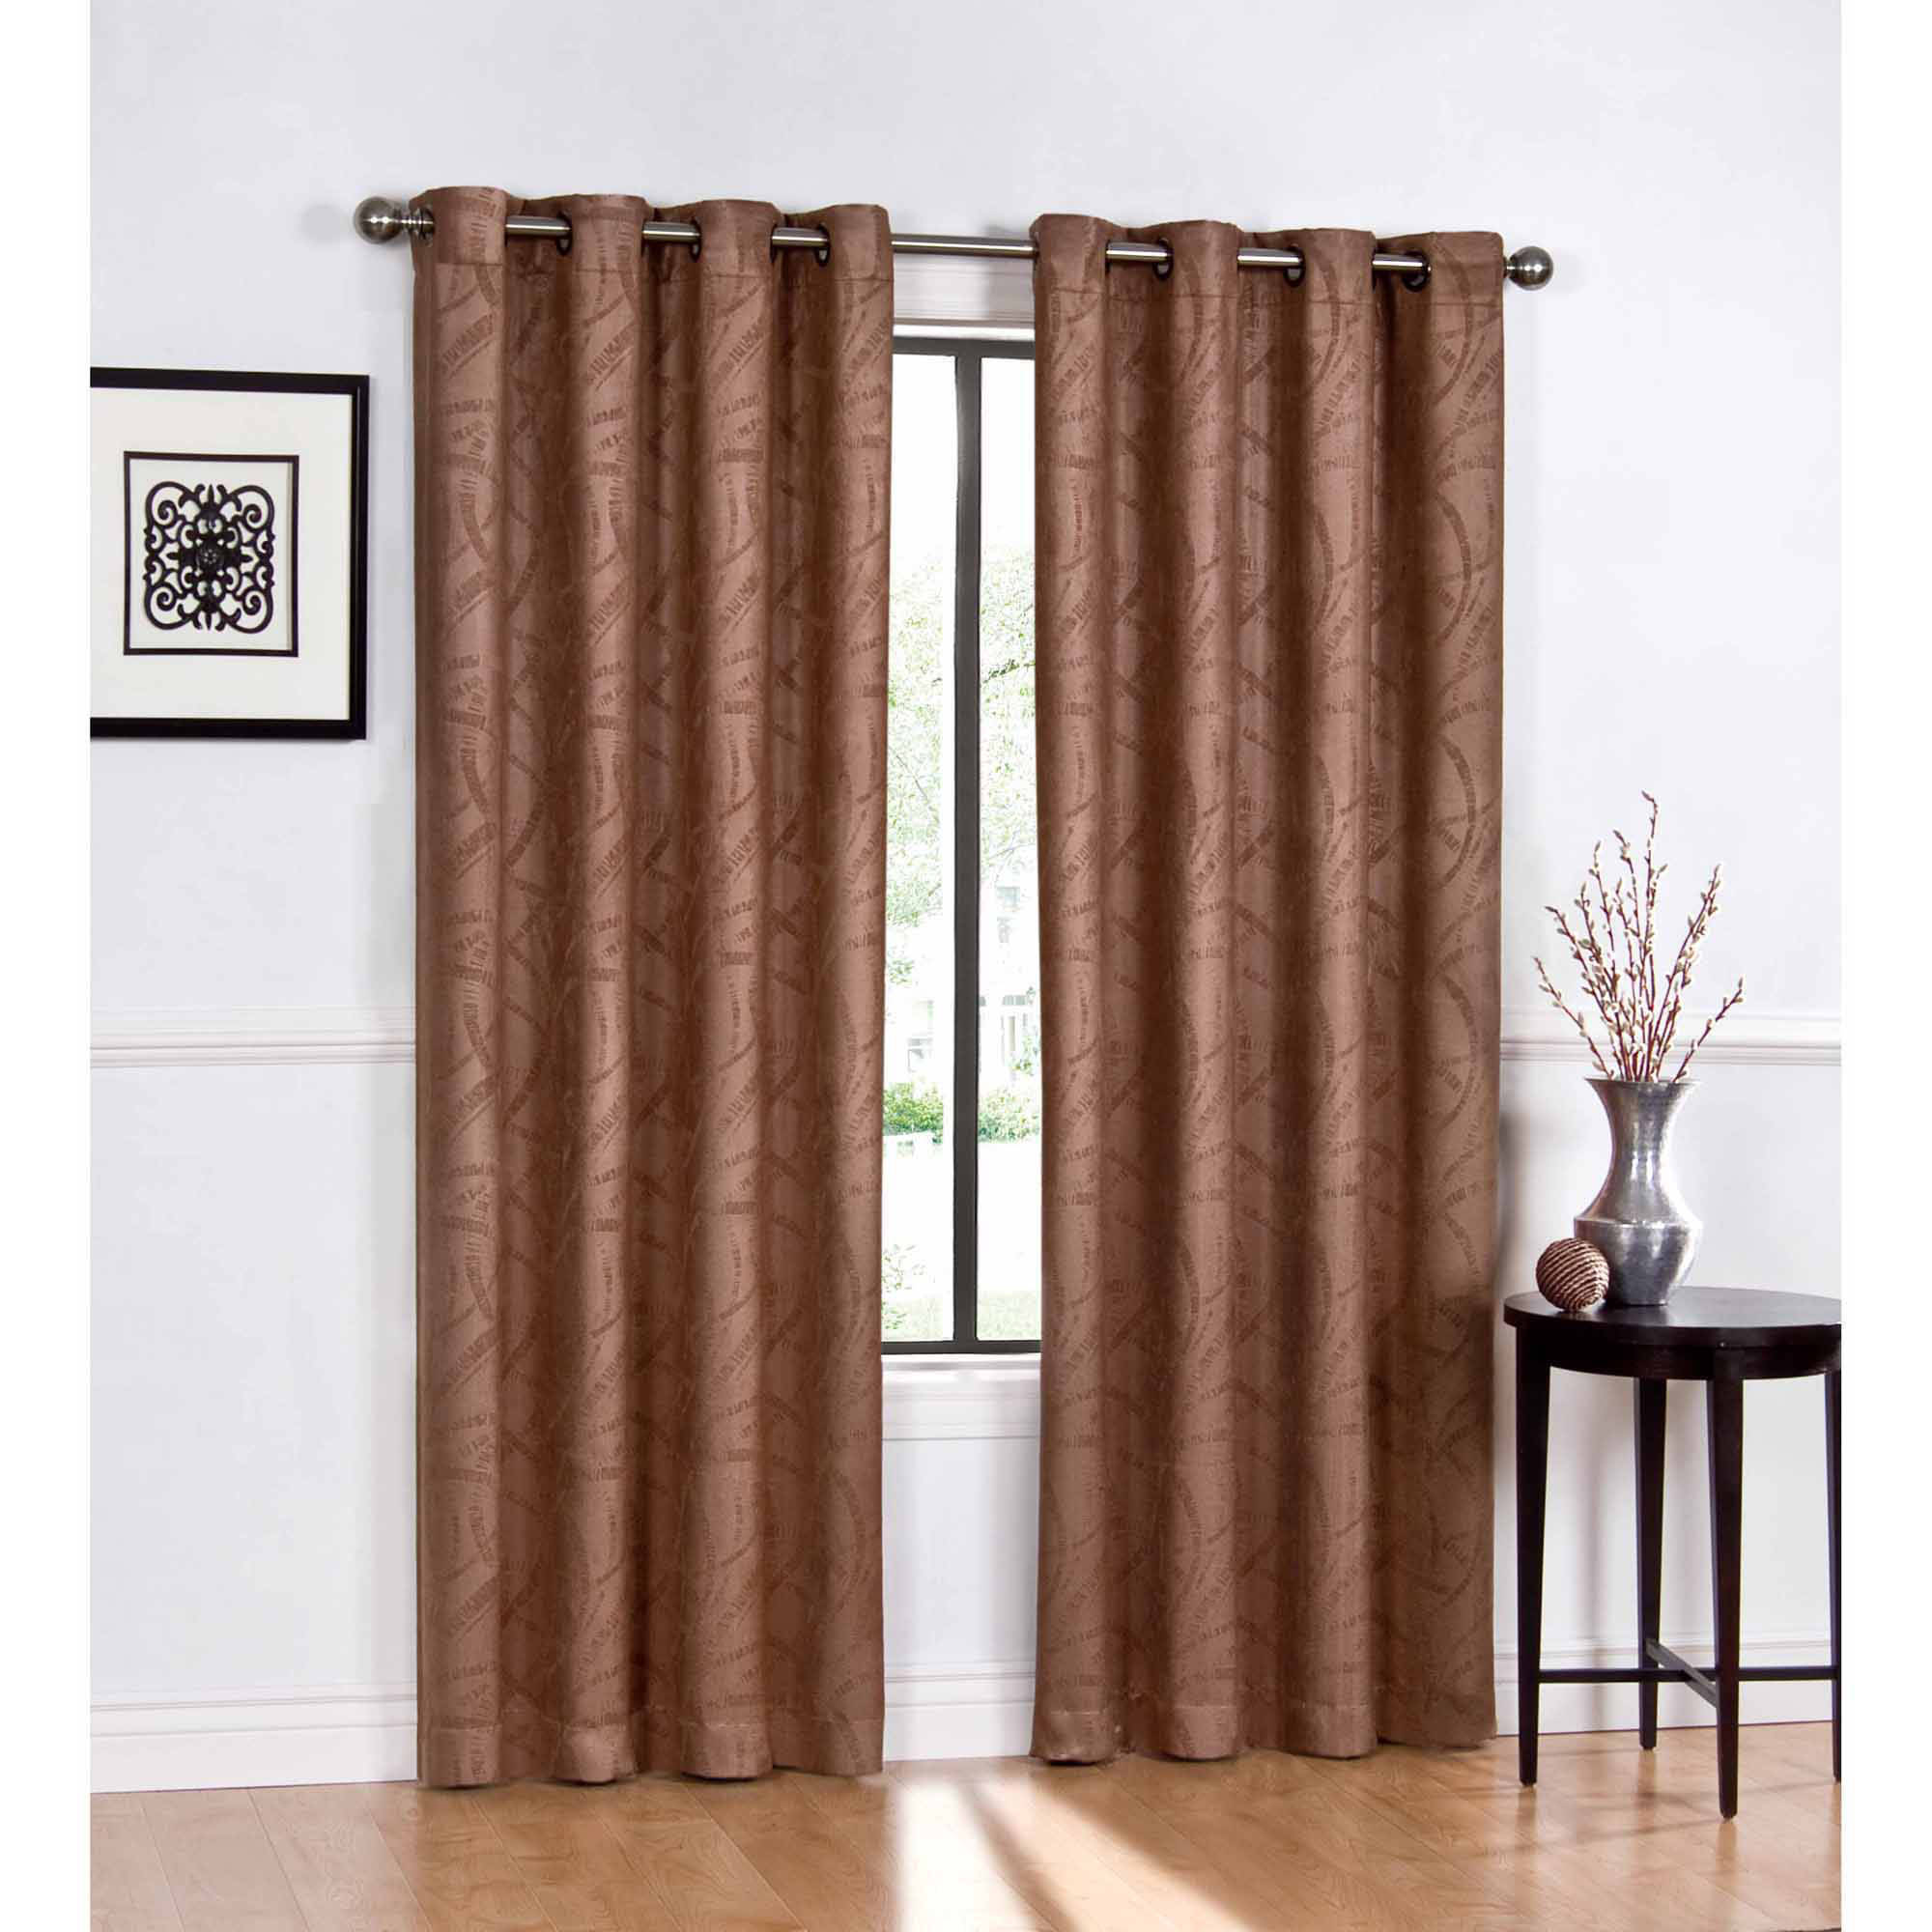 blackout gold treatments the curtain fabrics furnishings grbo curtains velvet b signature n depot drapes exclusive beige home window grommet in vpch cool